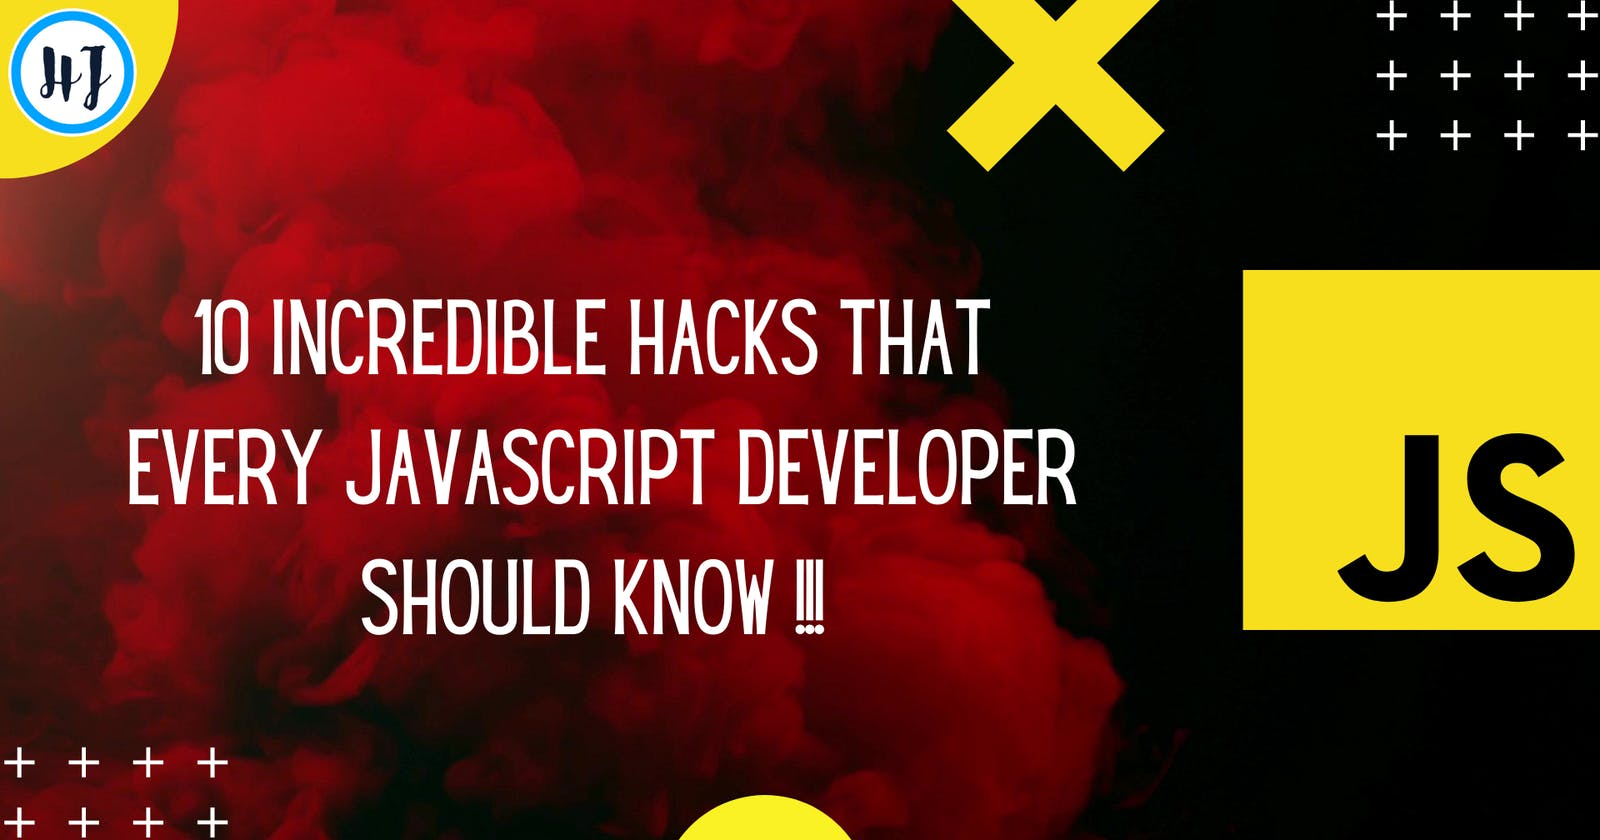 10 Incredible hacks that every JavaScript developer should know !!